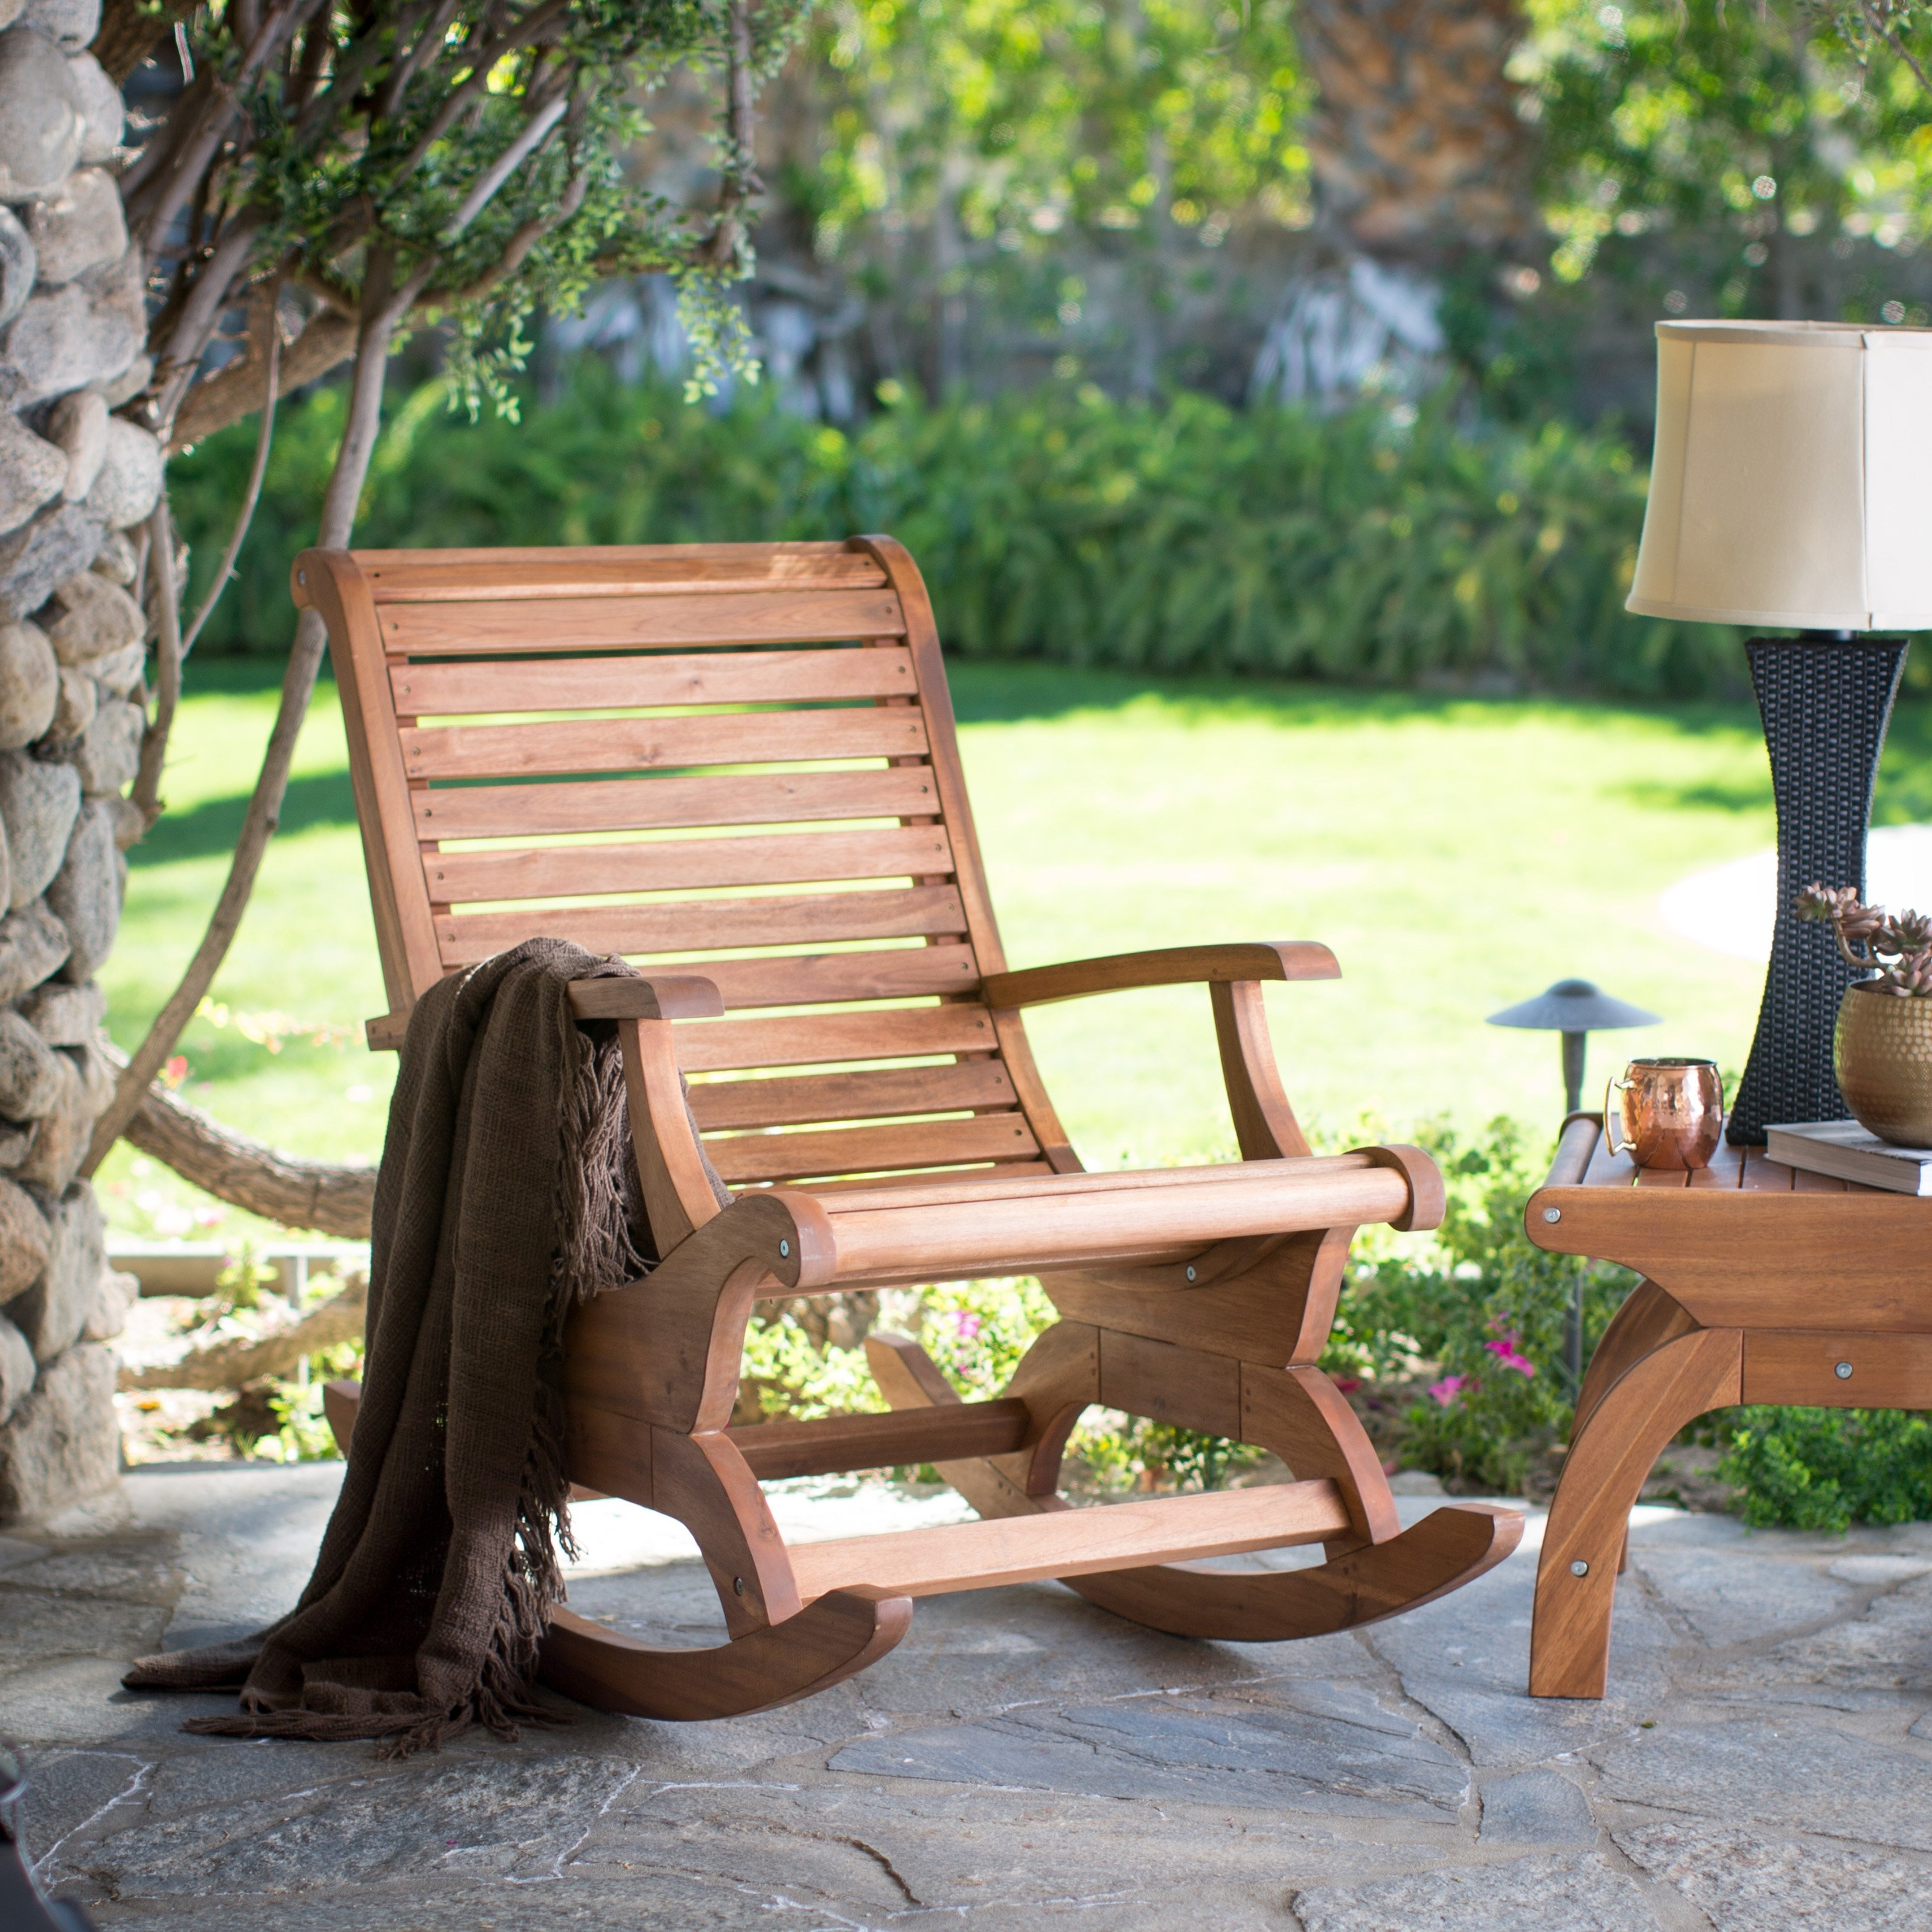 Preferred Patio Rocking Chairs Throughout Outdoor Rocking Chair : Time To Relax – Goodworksfurniture (View 13 of 20)